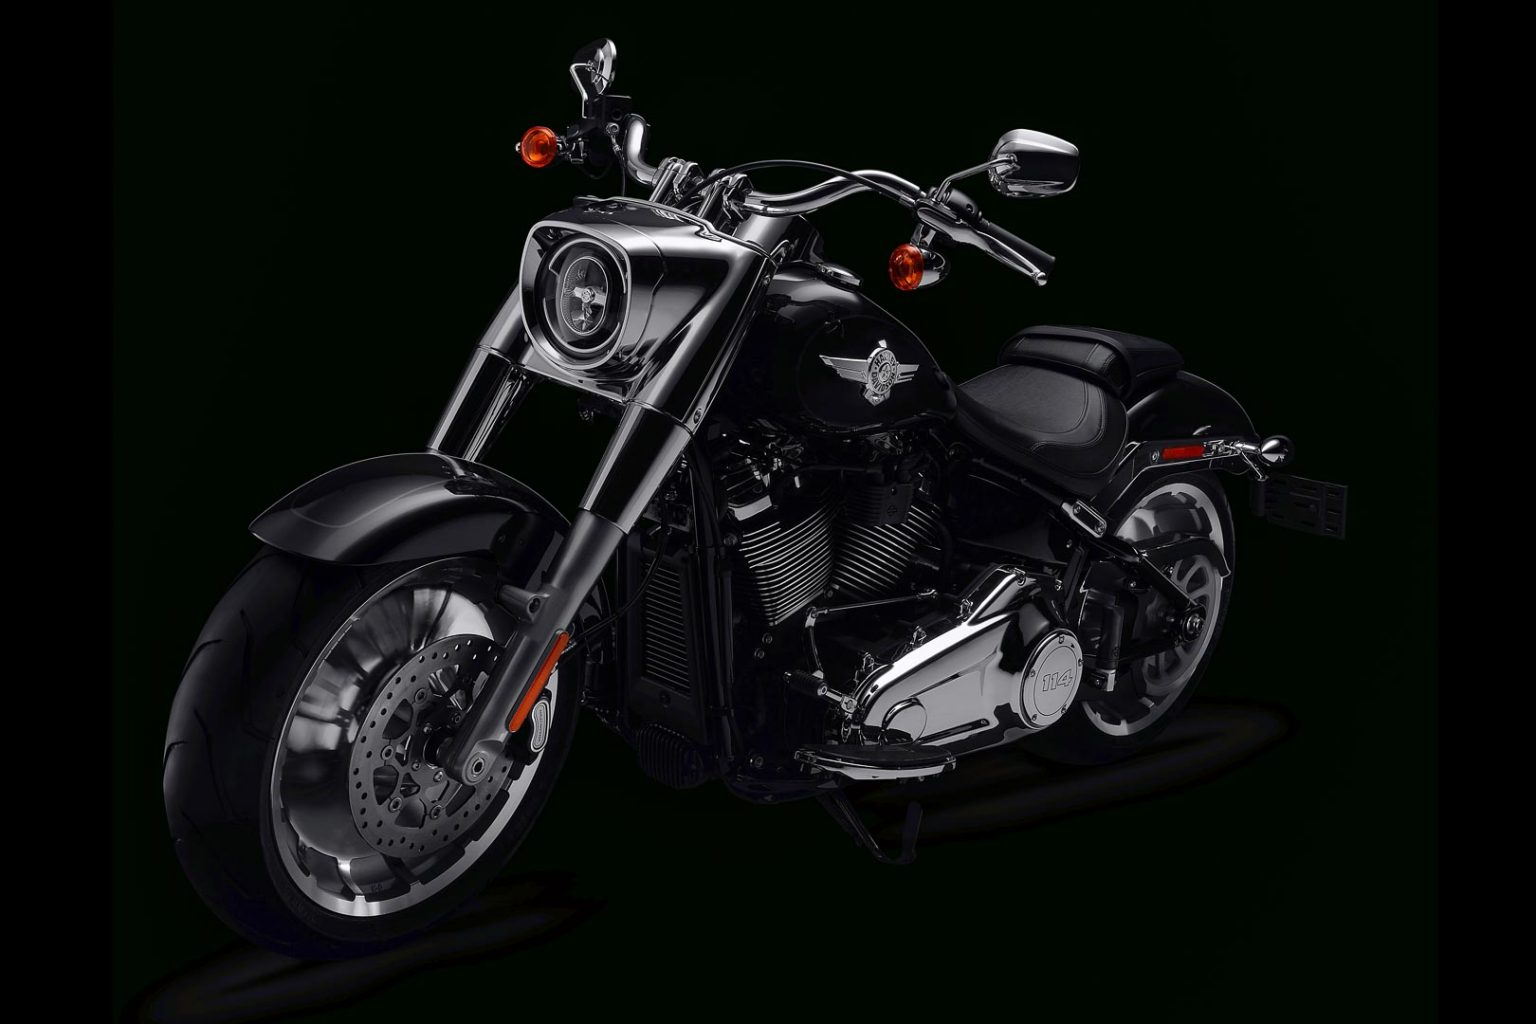 2021 Harley-Davidson Fat Boy 114 First Look (Specs, Photos, Prices)